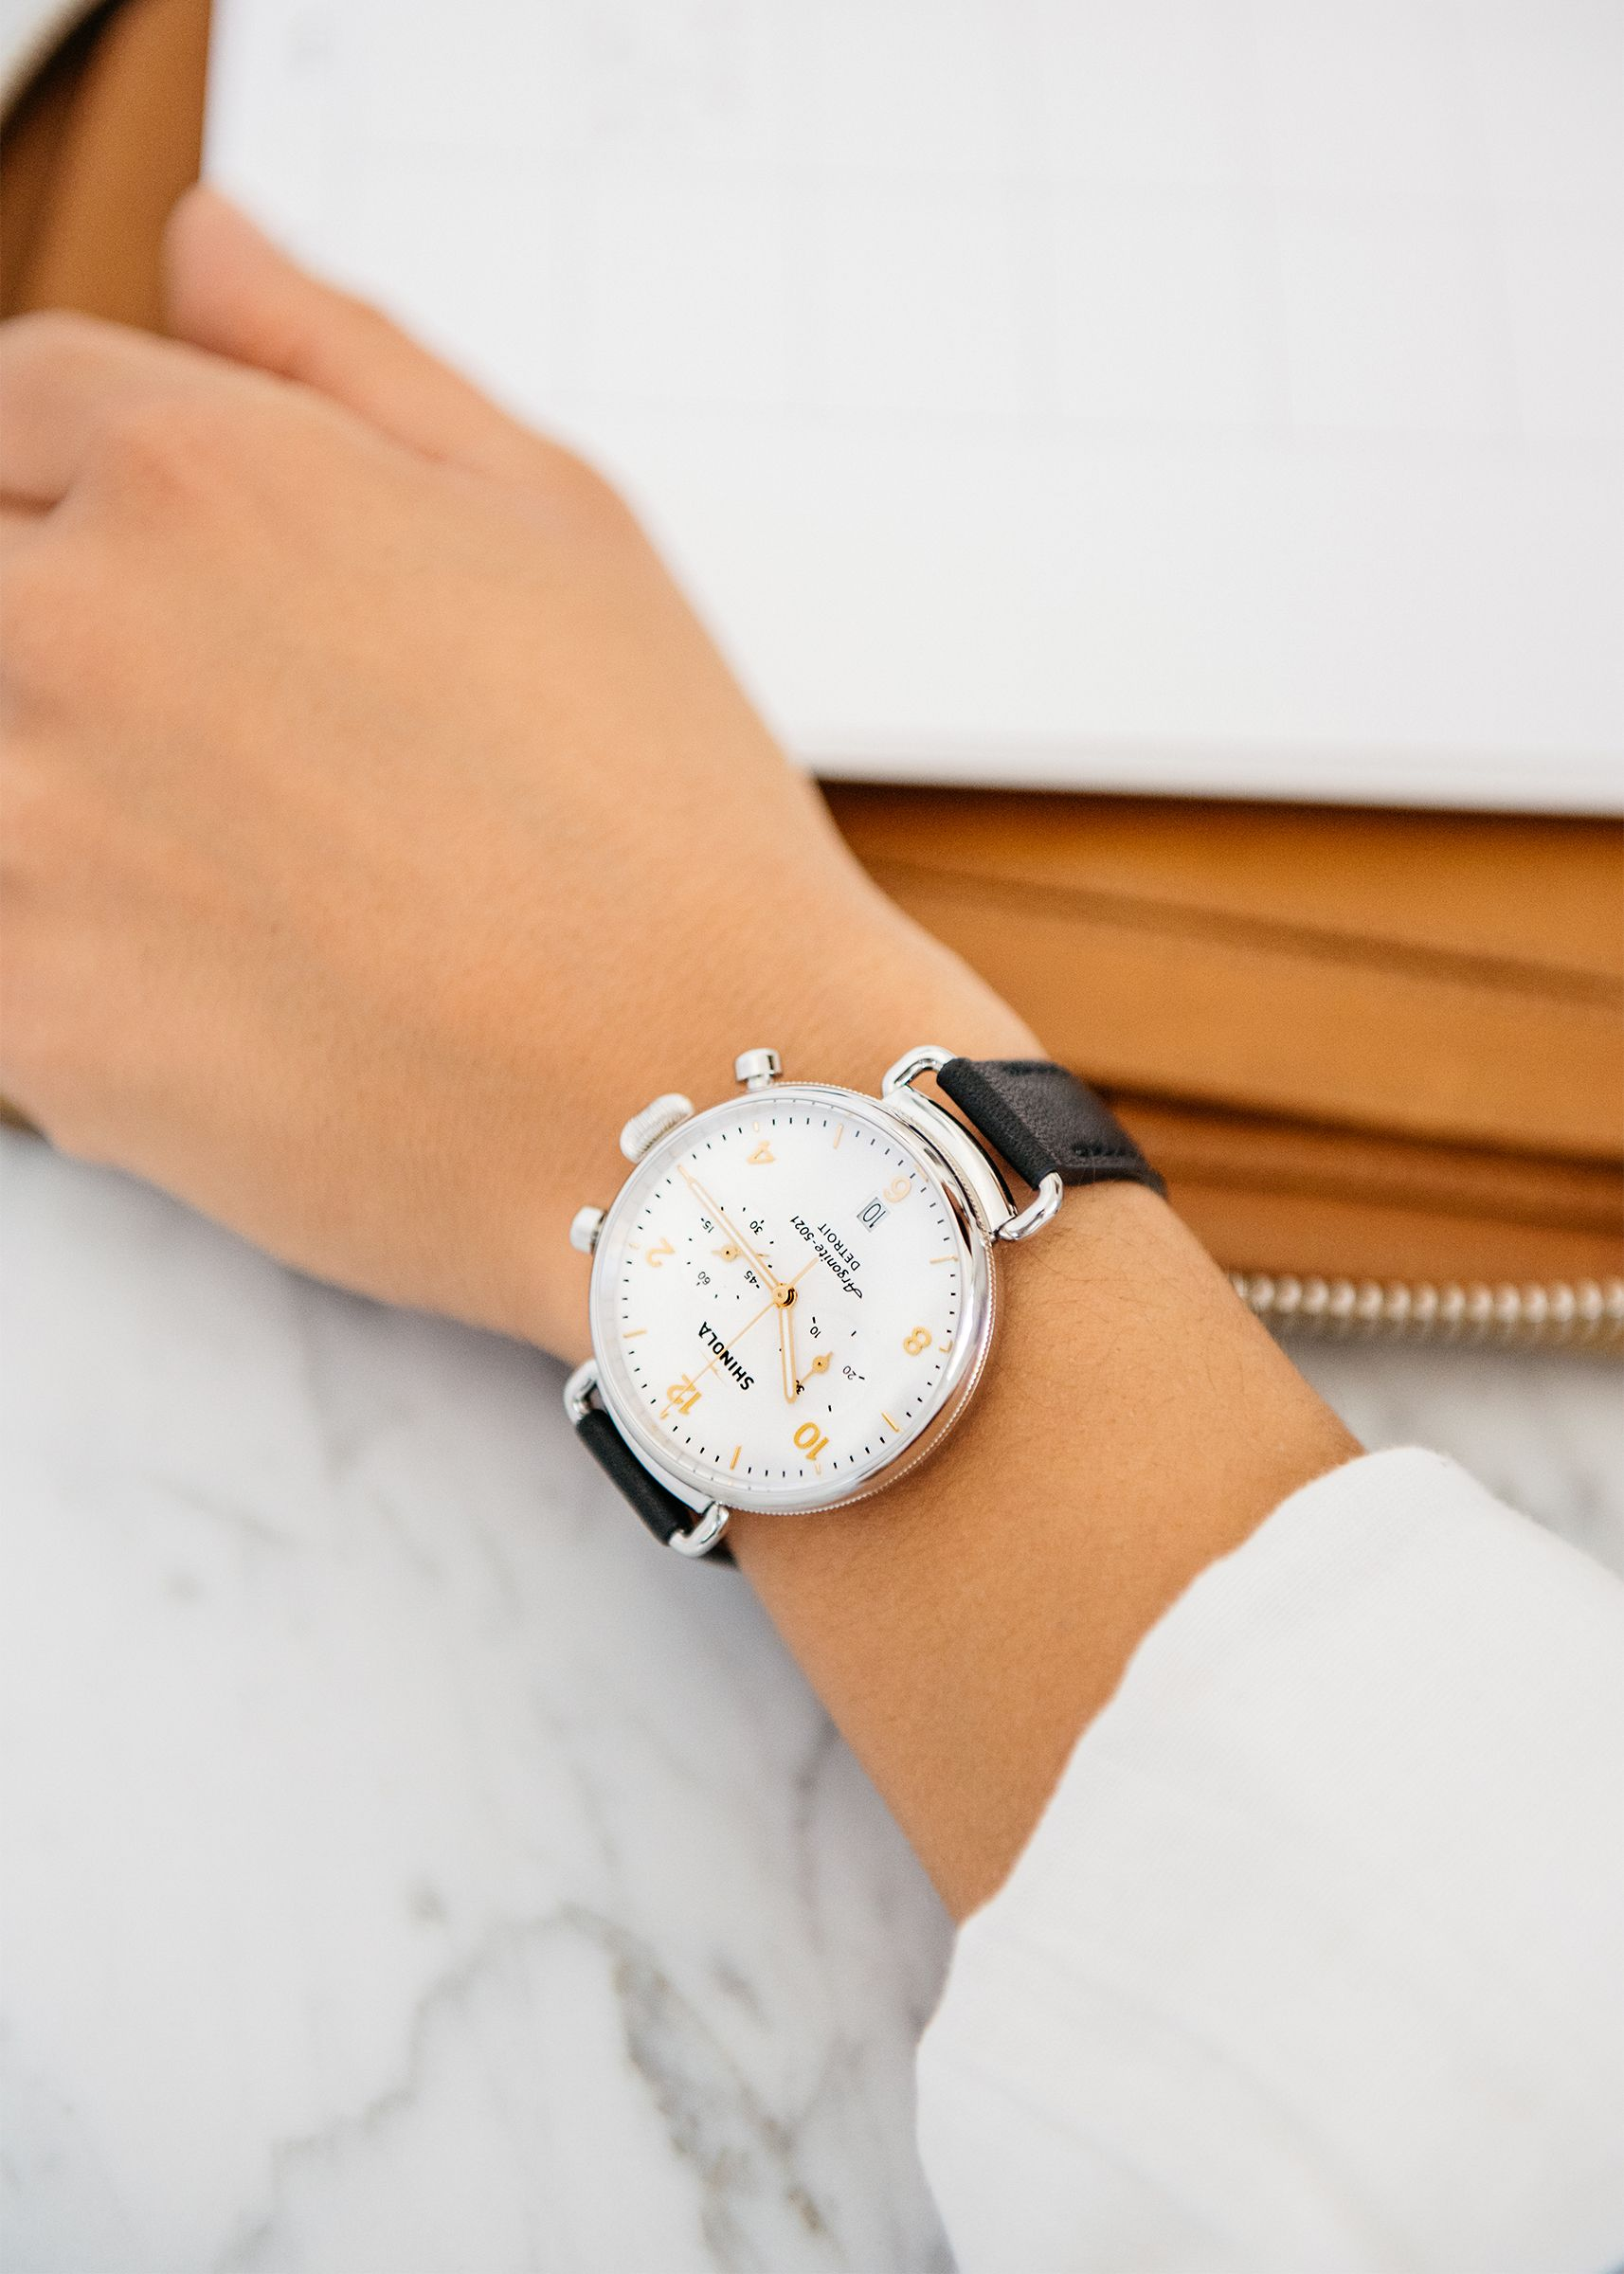 2fcb0a61b Women's Watch - The Canfield Chrono 38mm White Dial with Black ...